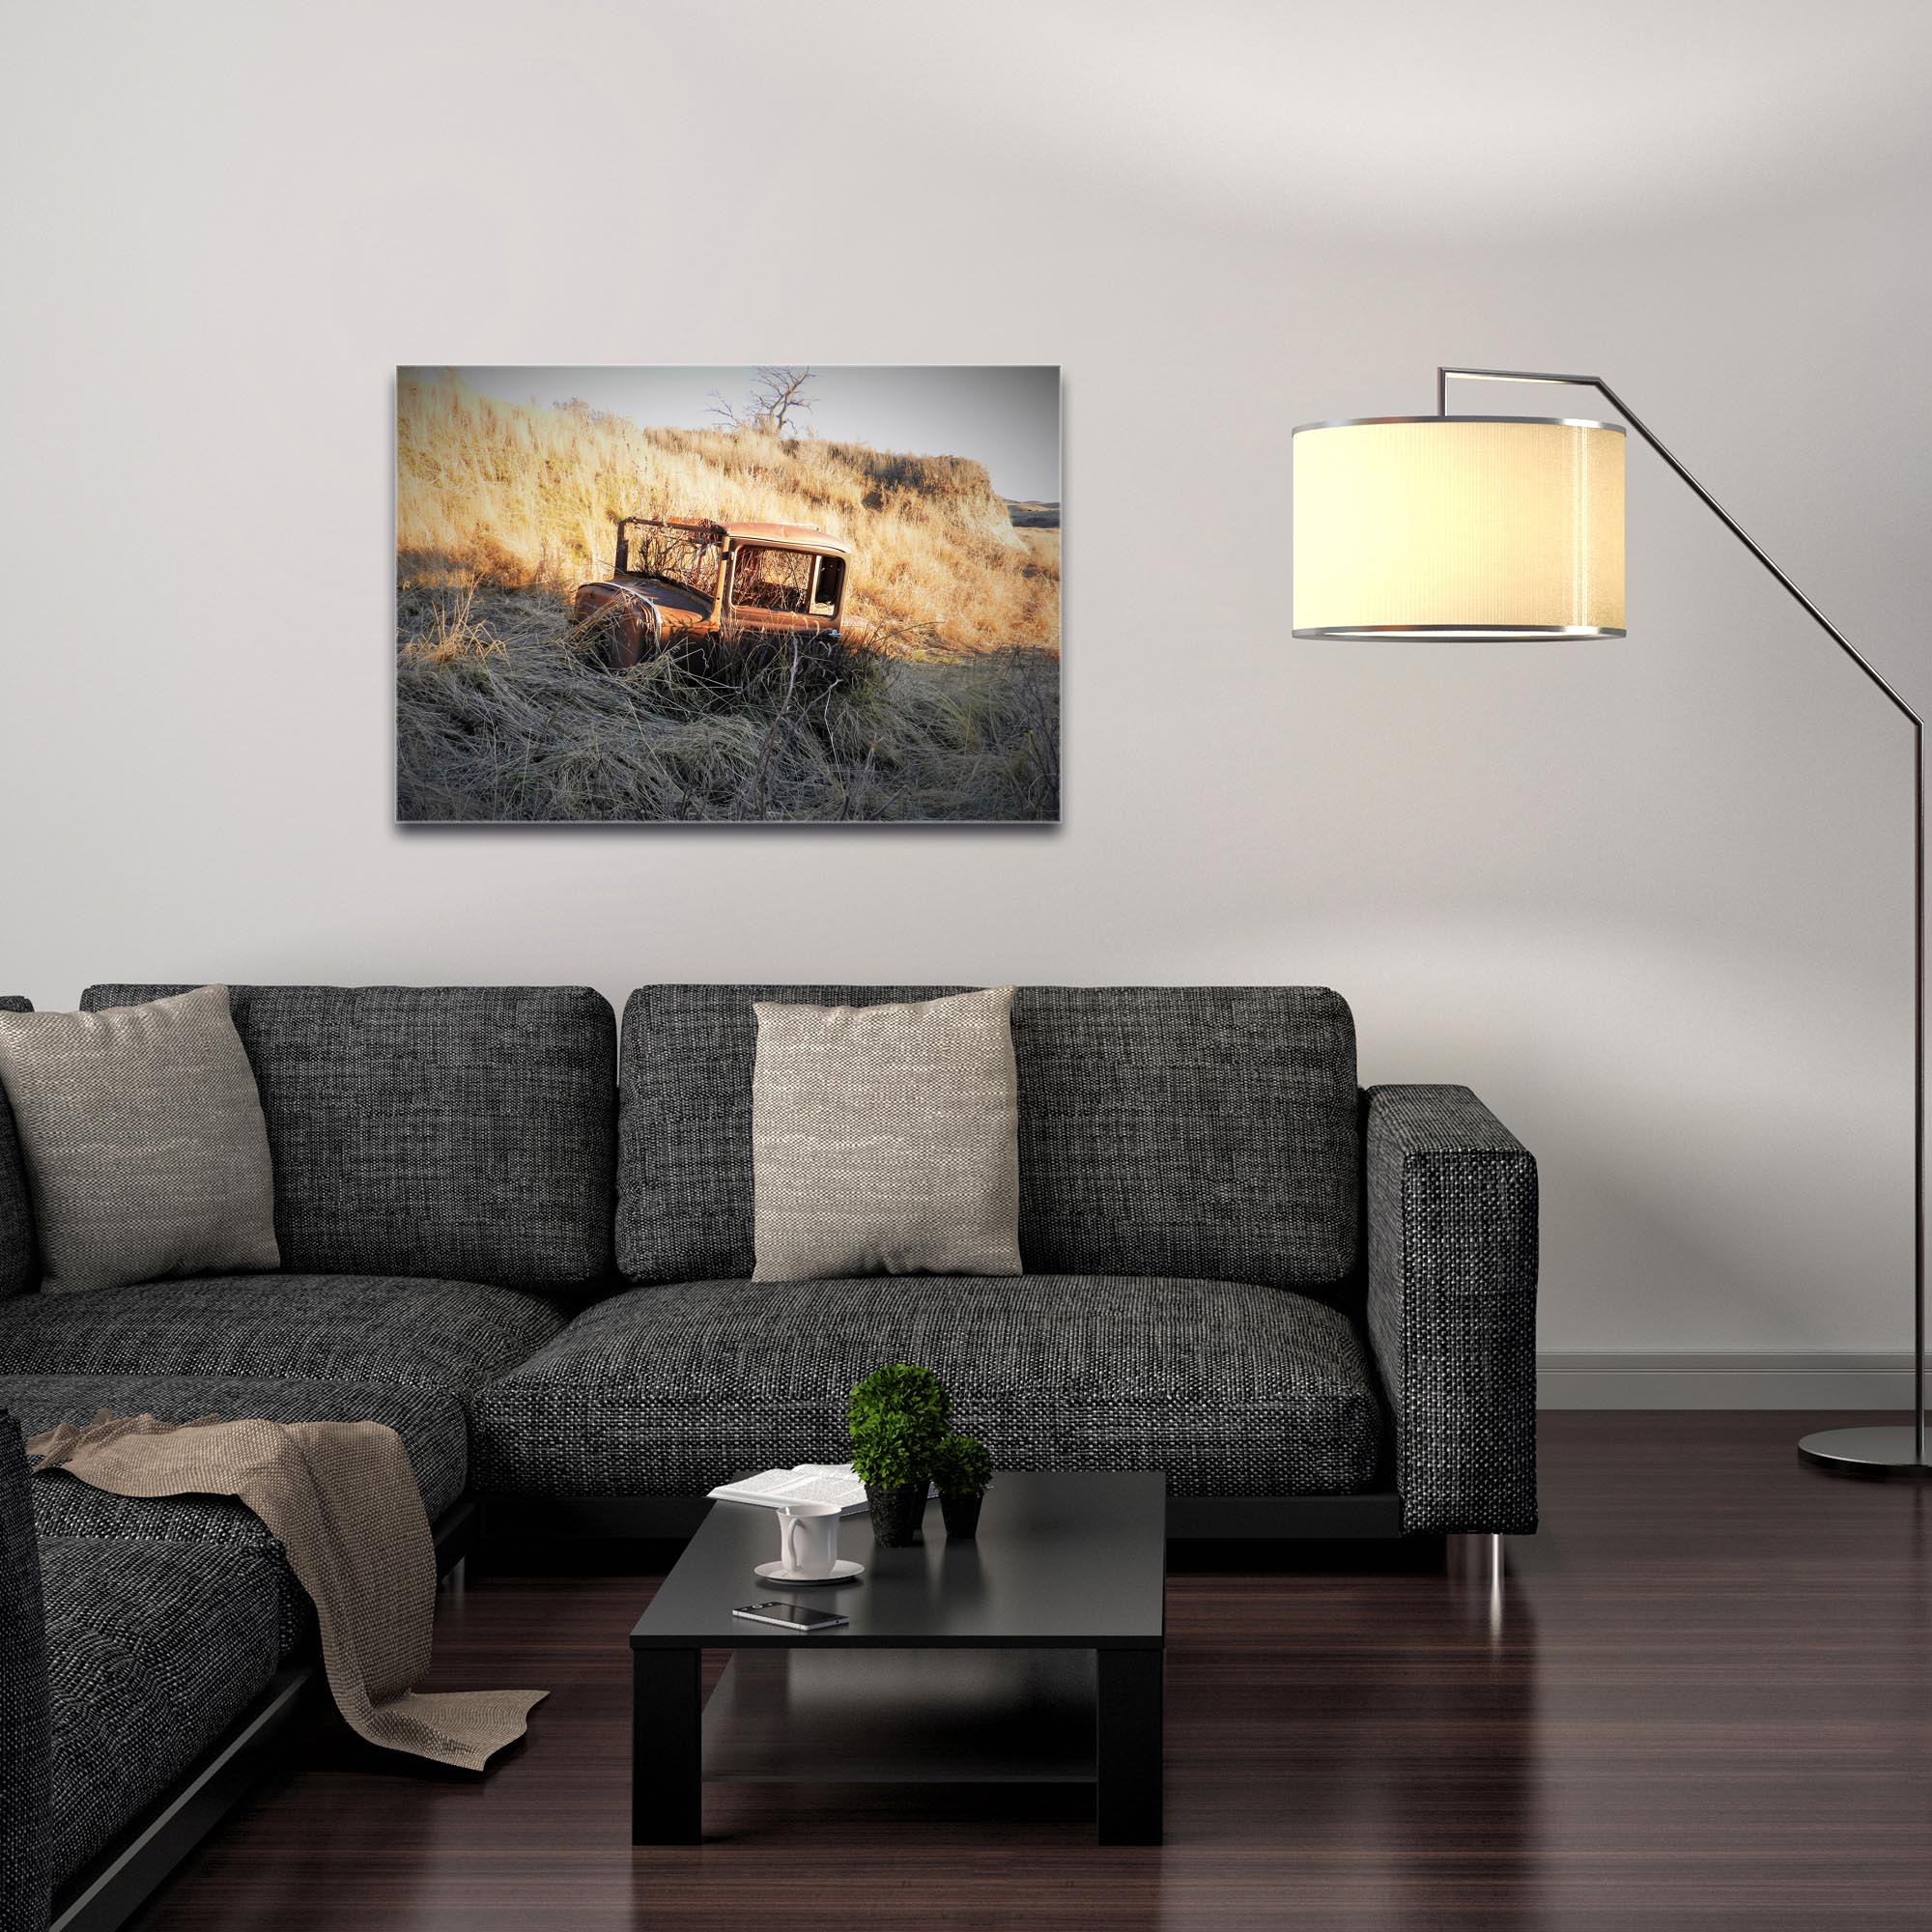 Western Wall Art 'The Passage' - American West Decor on Metal or Plexiglass - Image 3